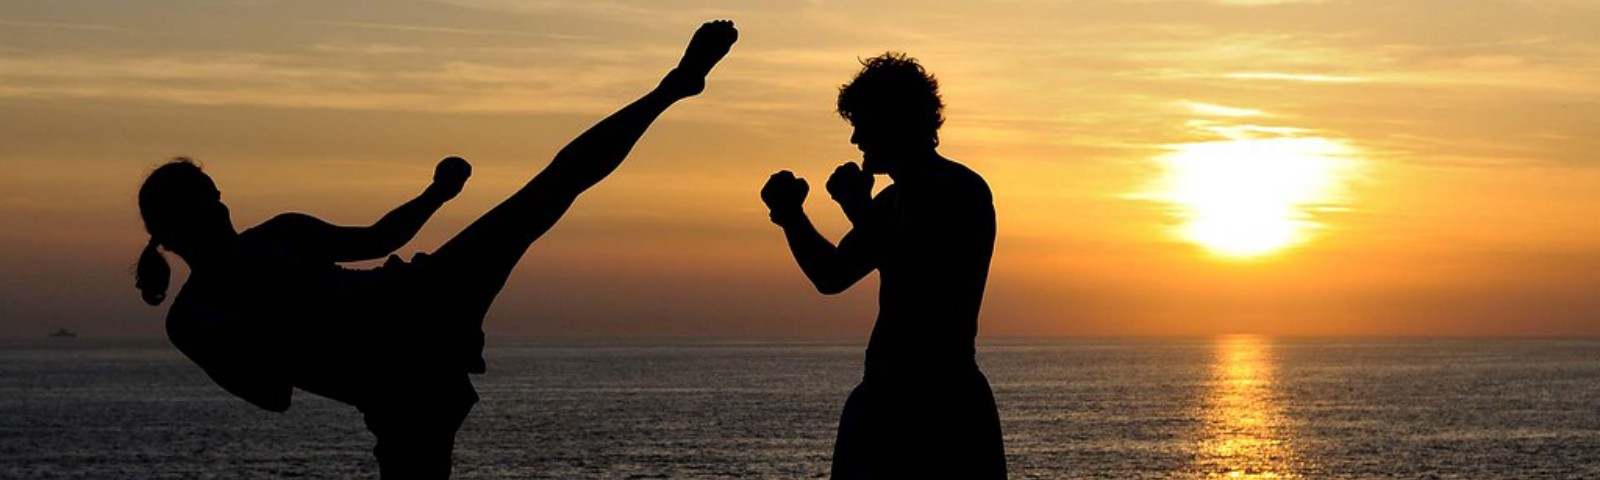 A photo of two people kickboxing at sunset.